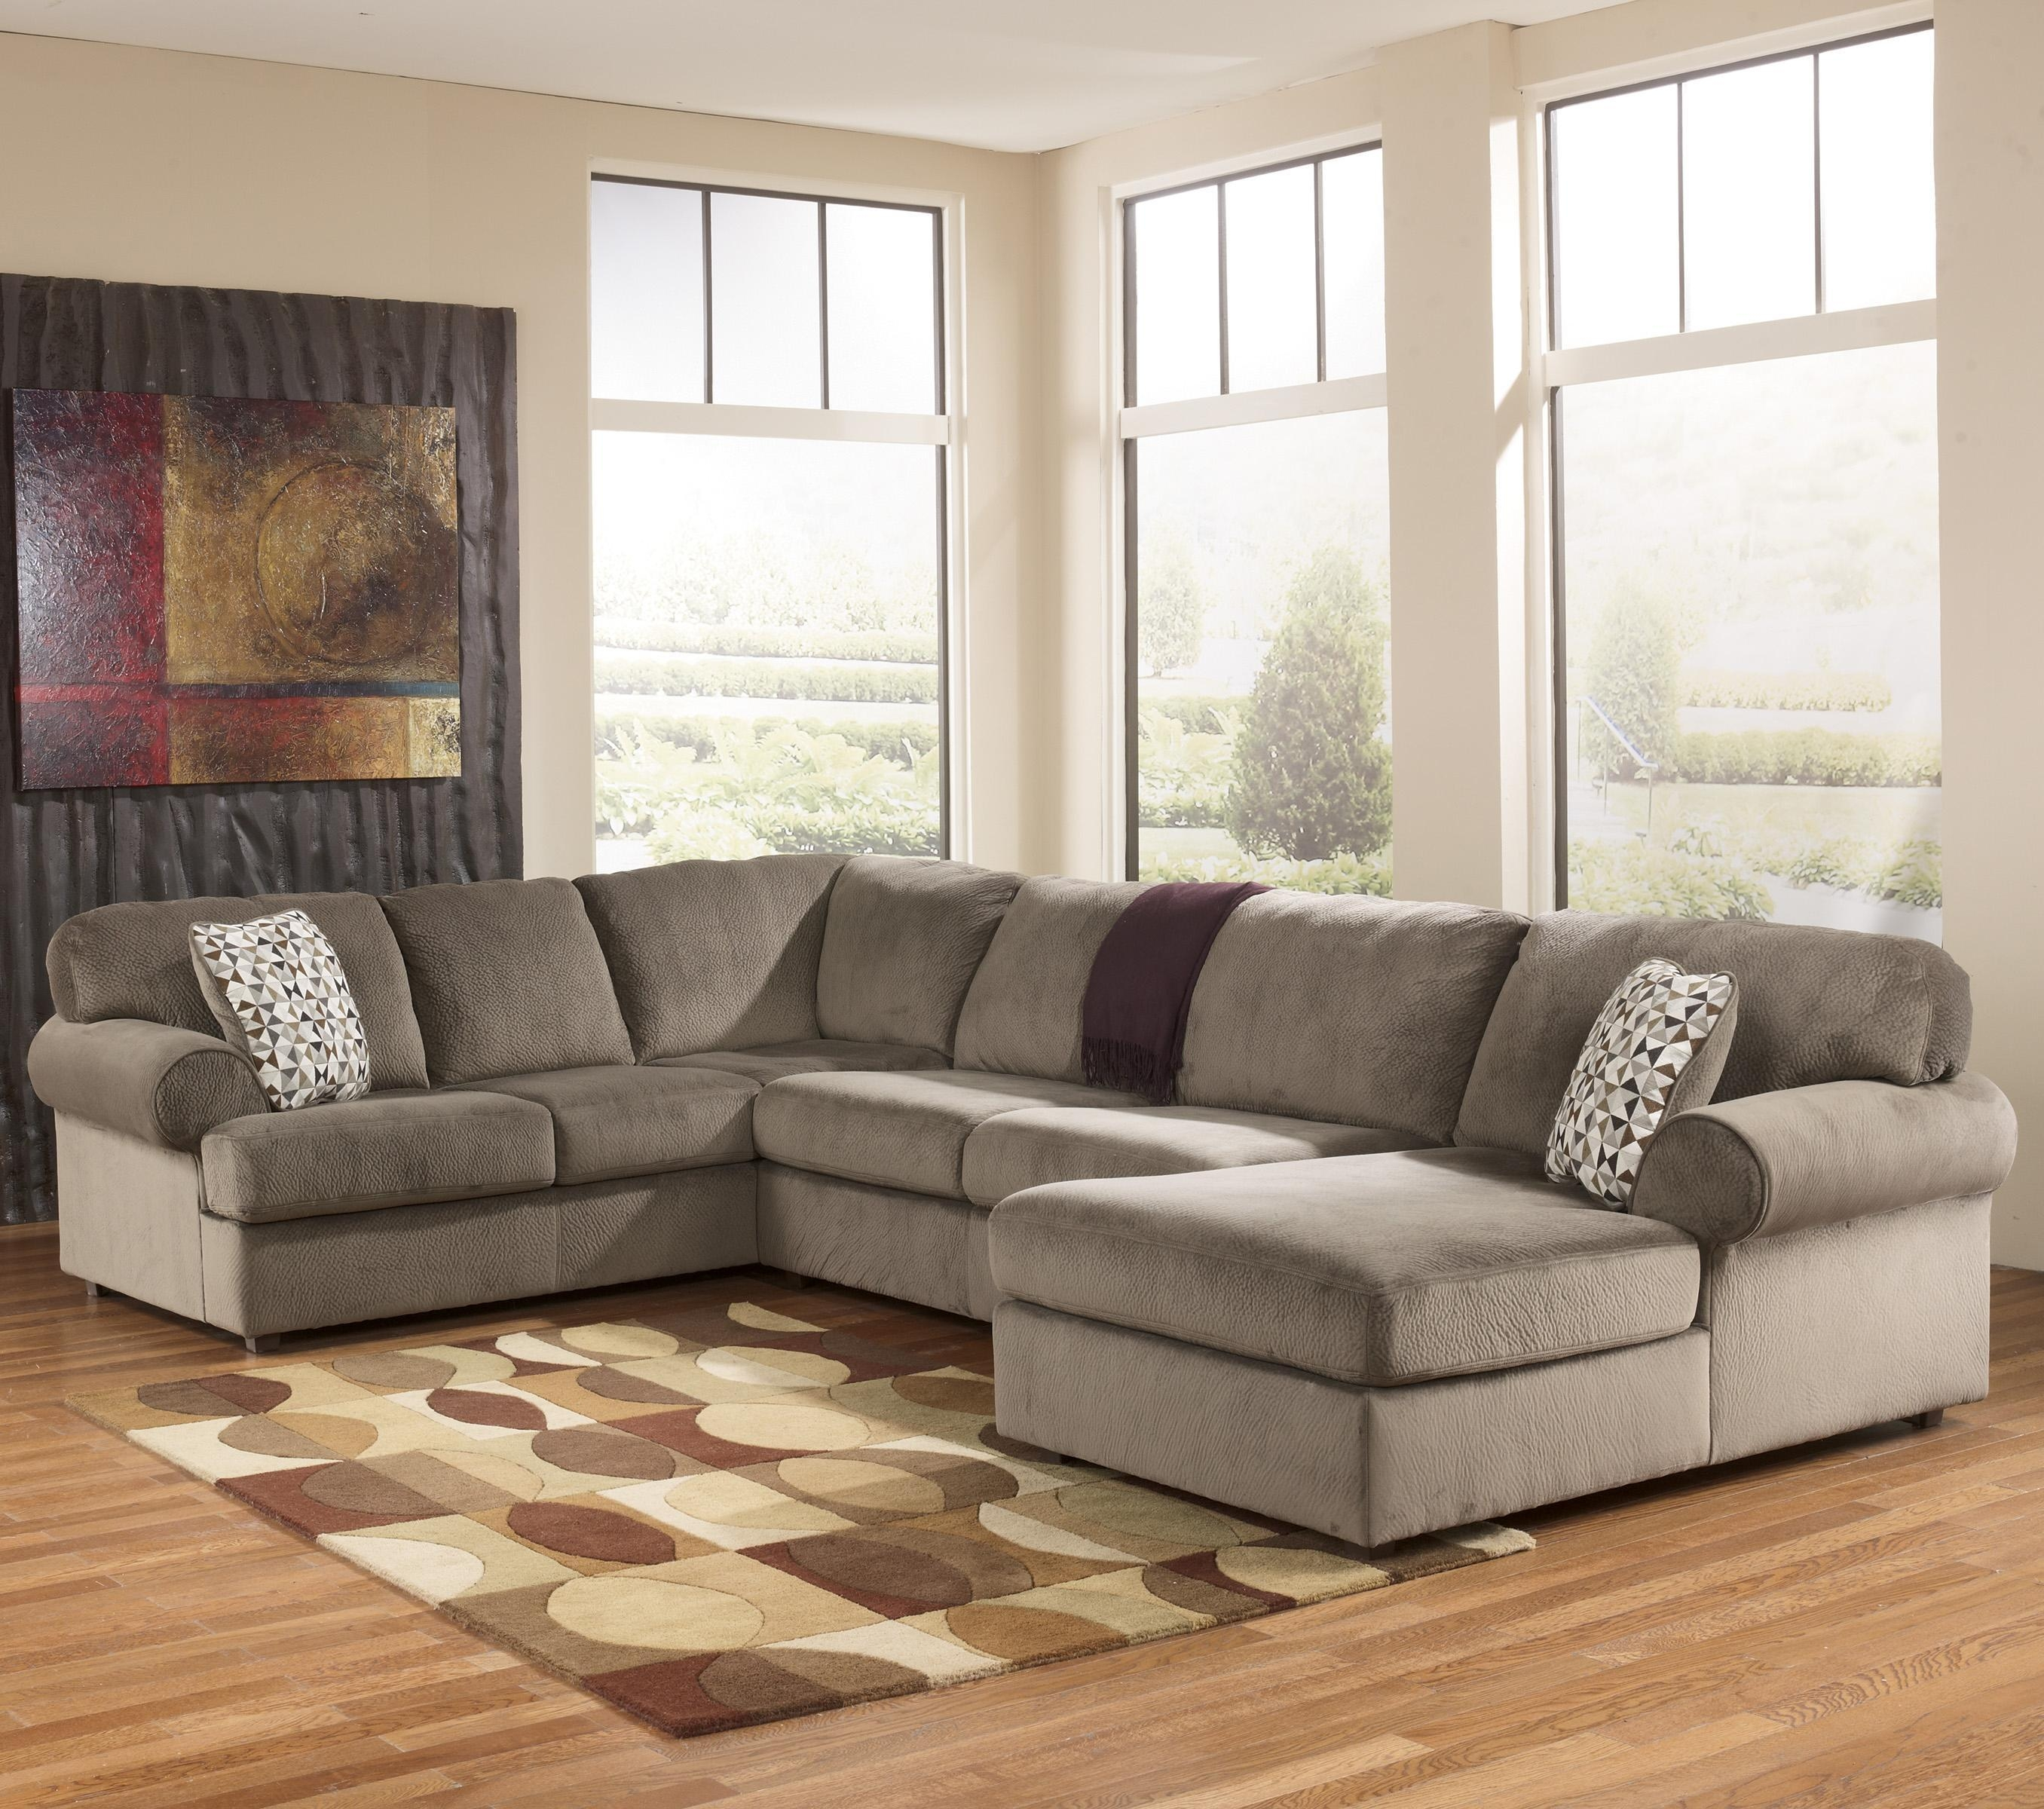 Sofas Center : Ashley Furniture Sectionals Sectional Couch Gray Within Ashley Corduroy Sectional Sofas (View 6 of 20)